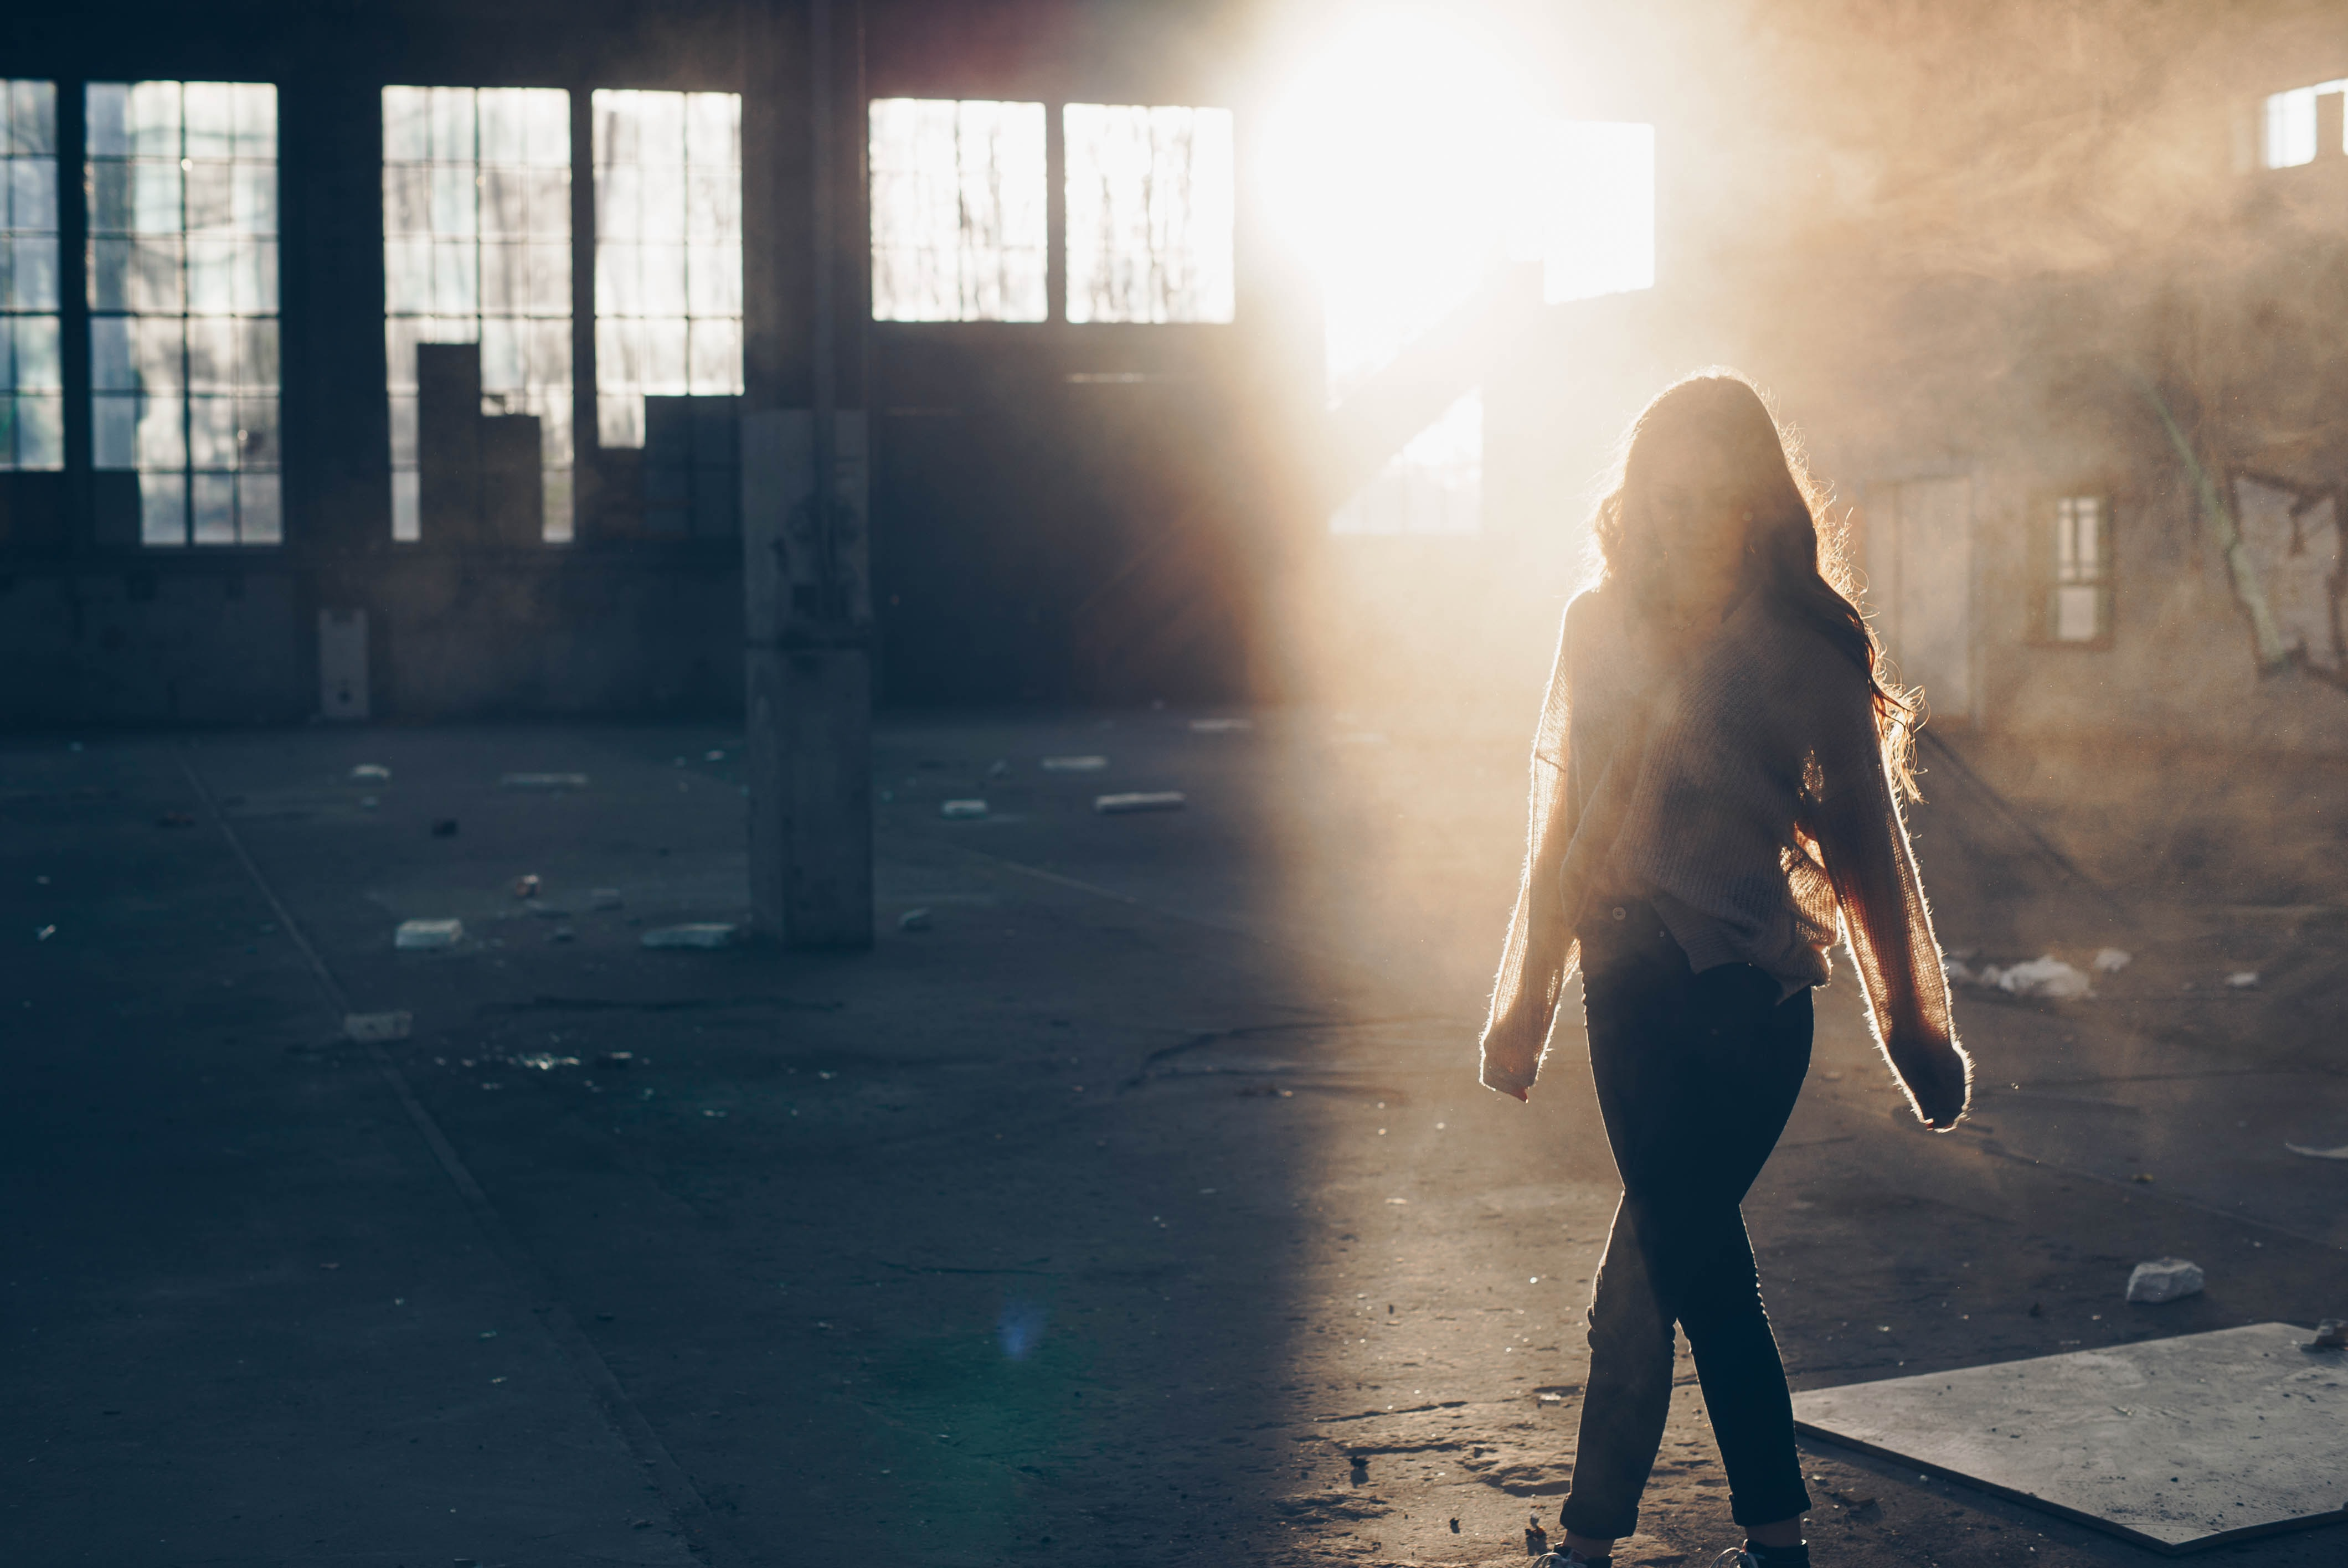 Backlit woman walks through an abandoned foggy warehouse